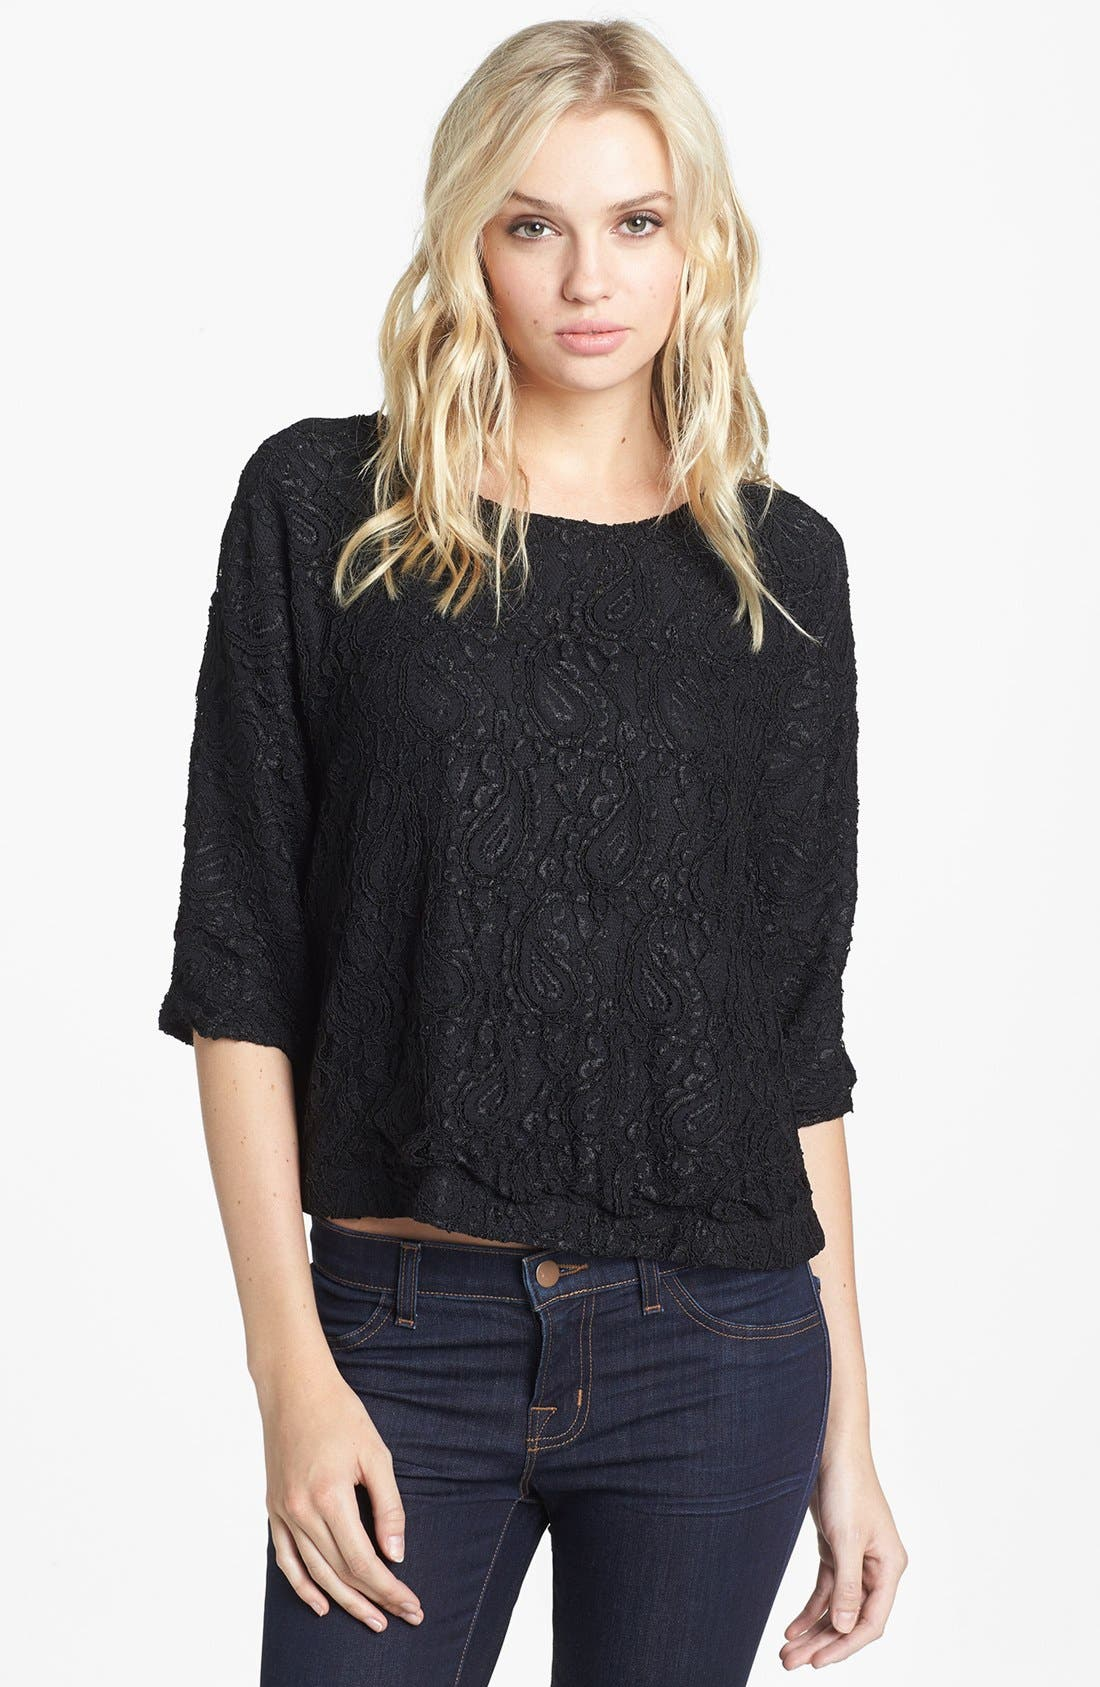 Alternate Image 1 Selected - Lovers + Friends 'Intuition' Lace Envelope Back Blouse